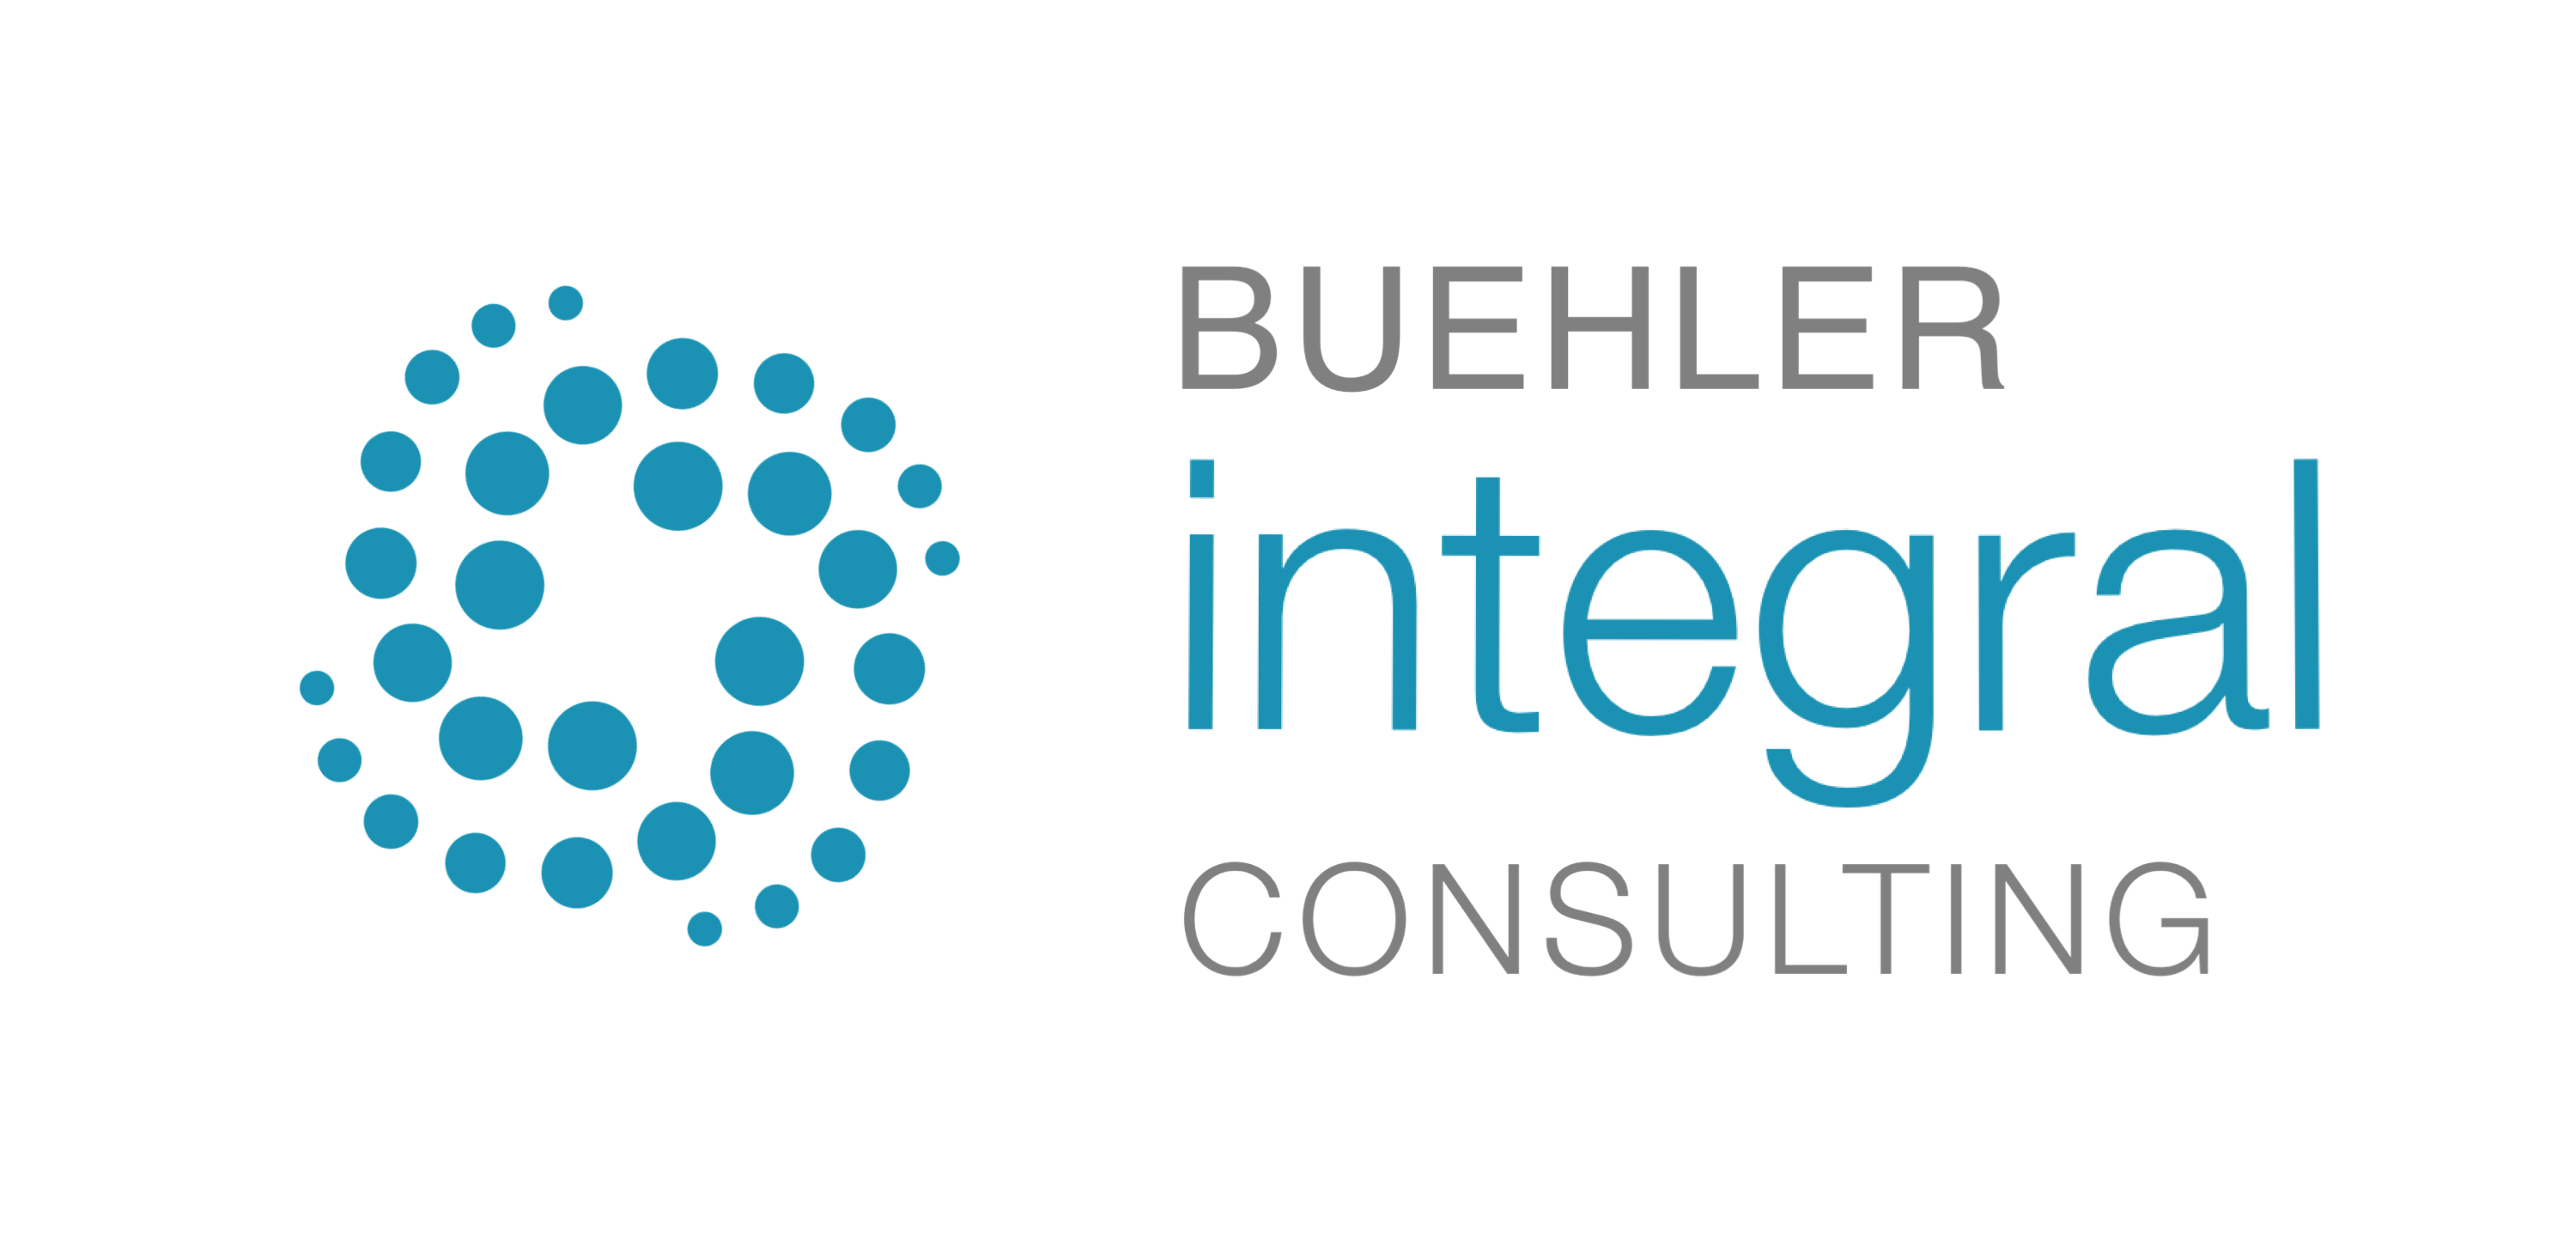 BUEHLER Integral CONSULTING